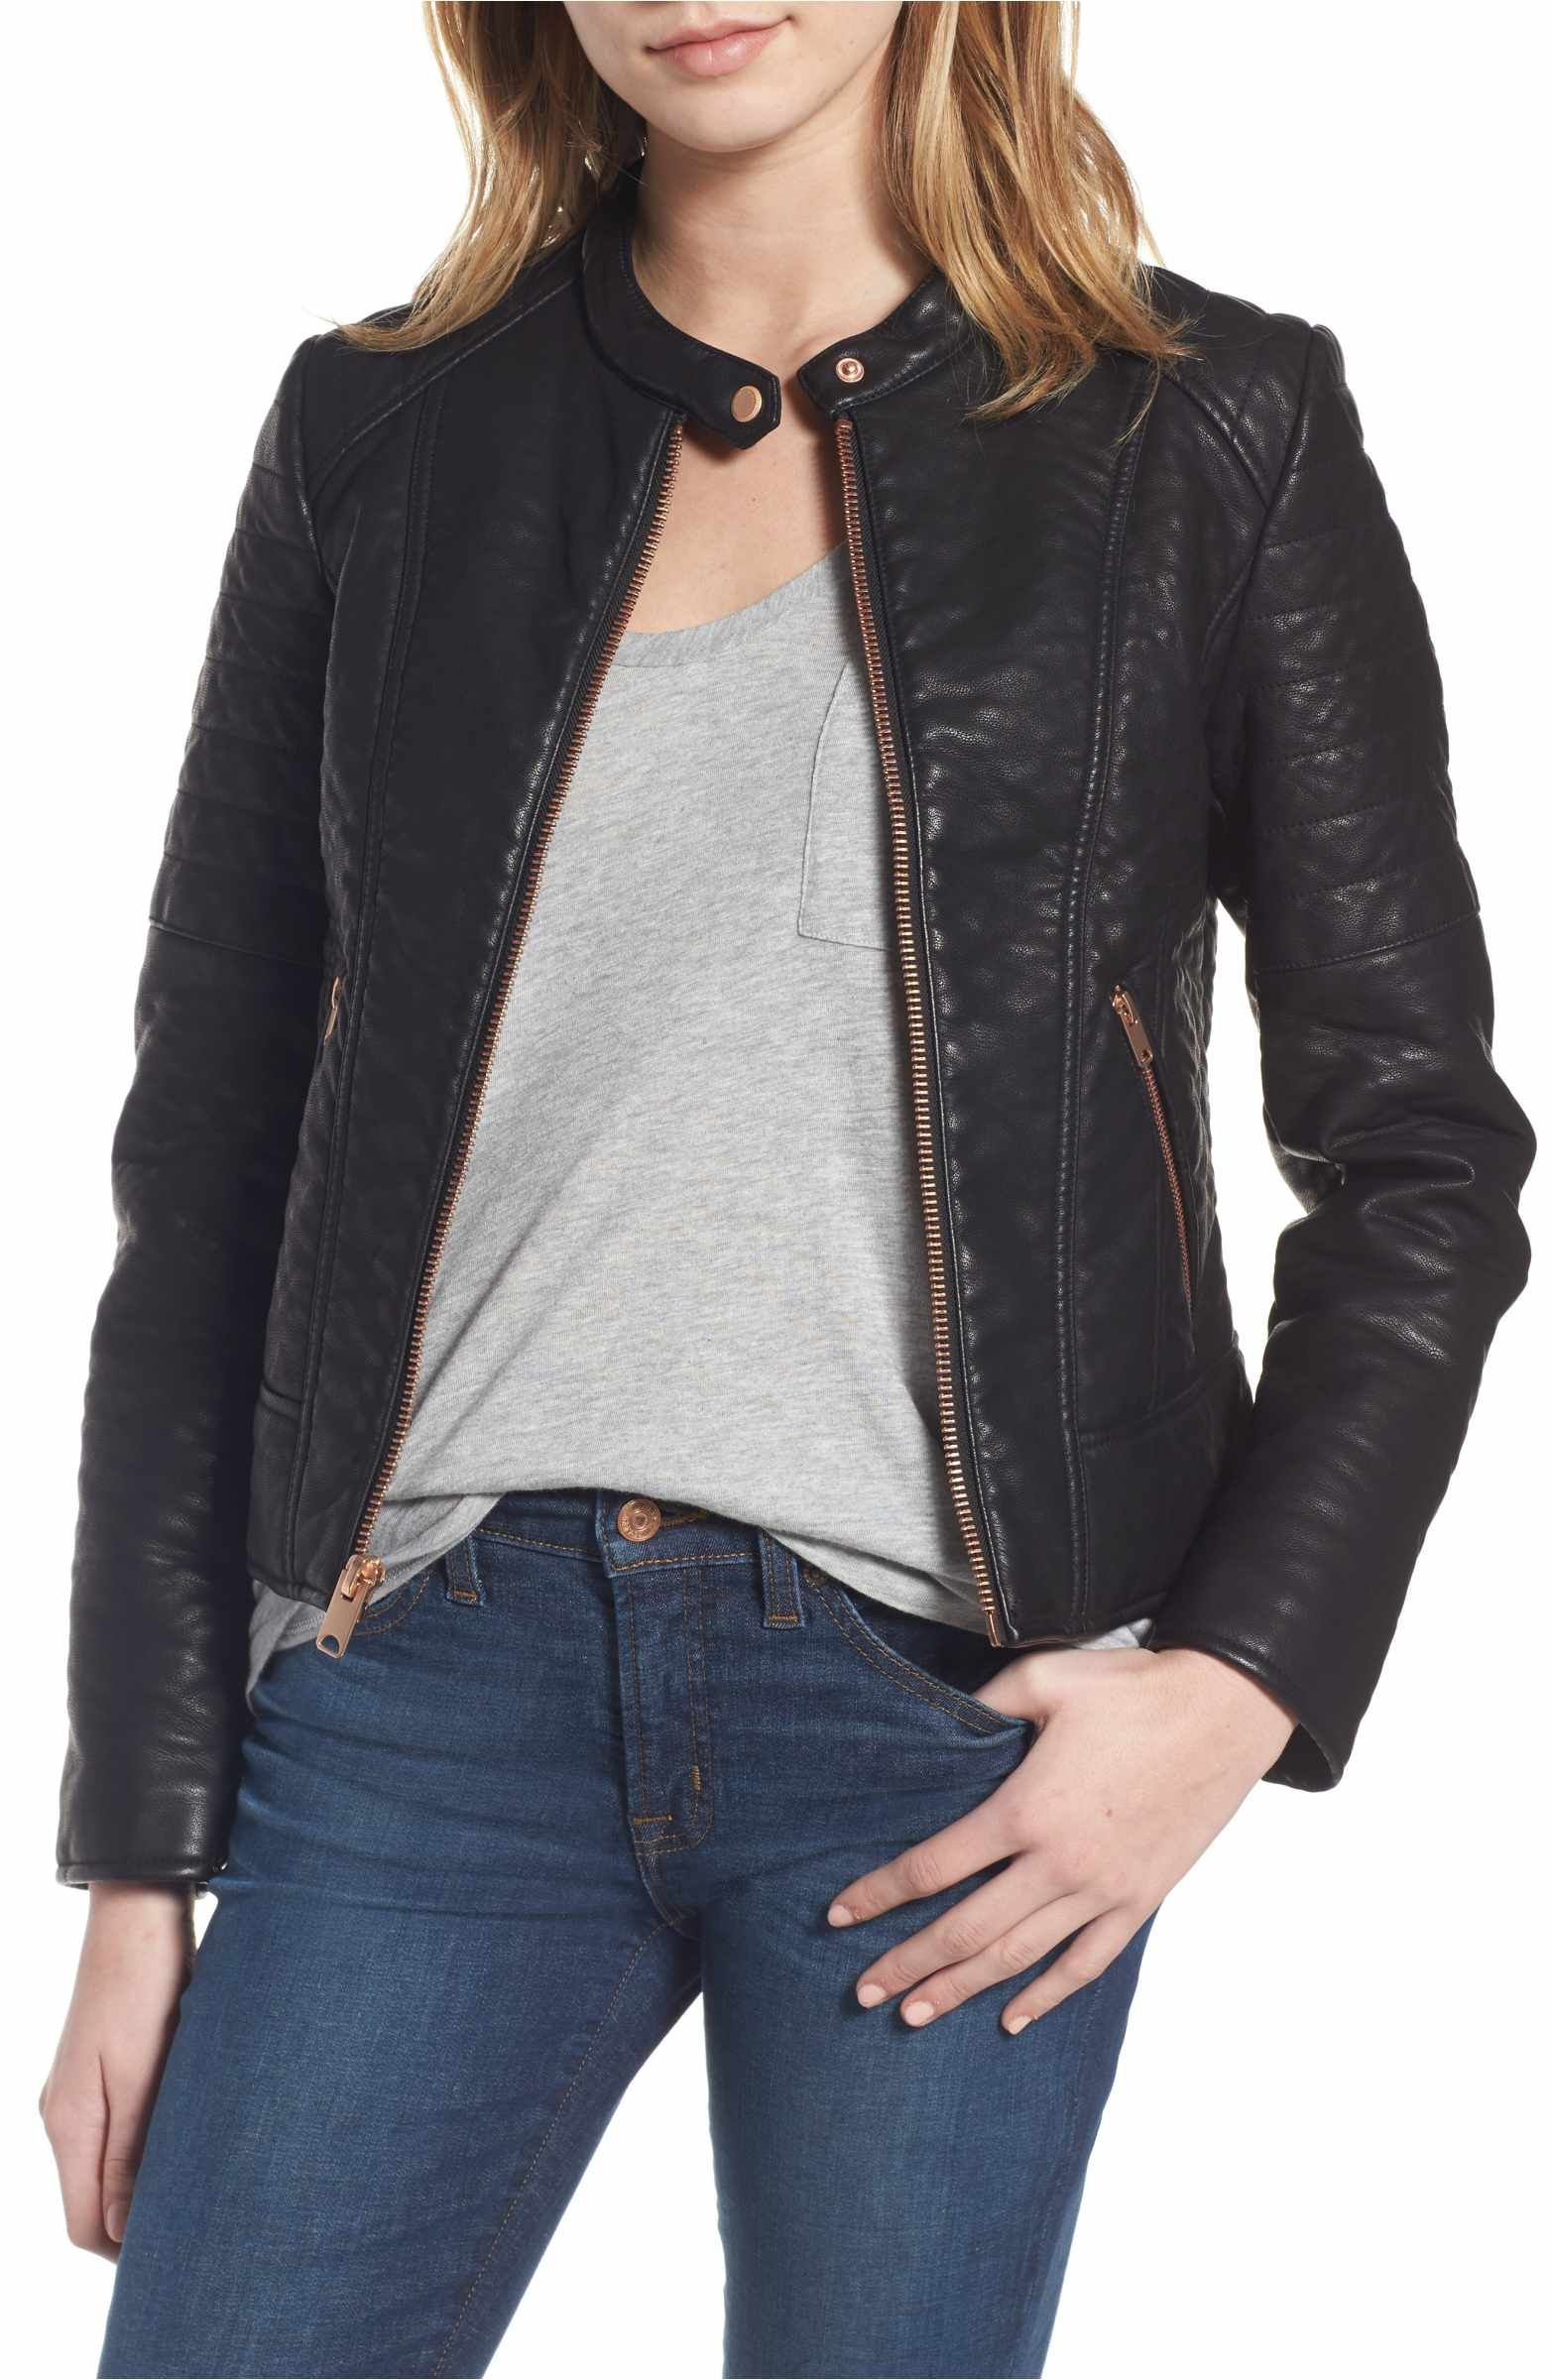 Main Image Andrew Marc Blakely Faux Leather Jacket